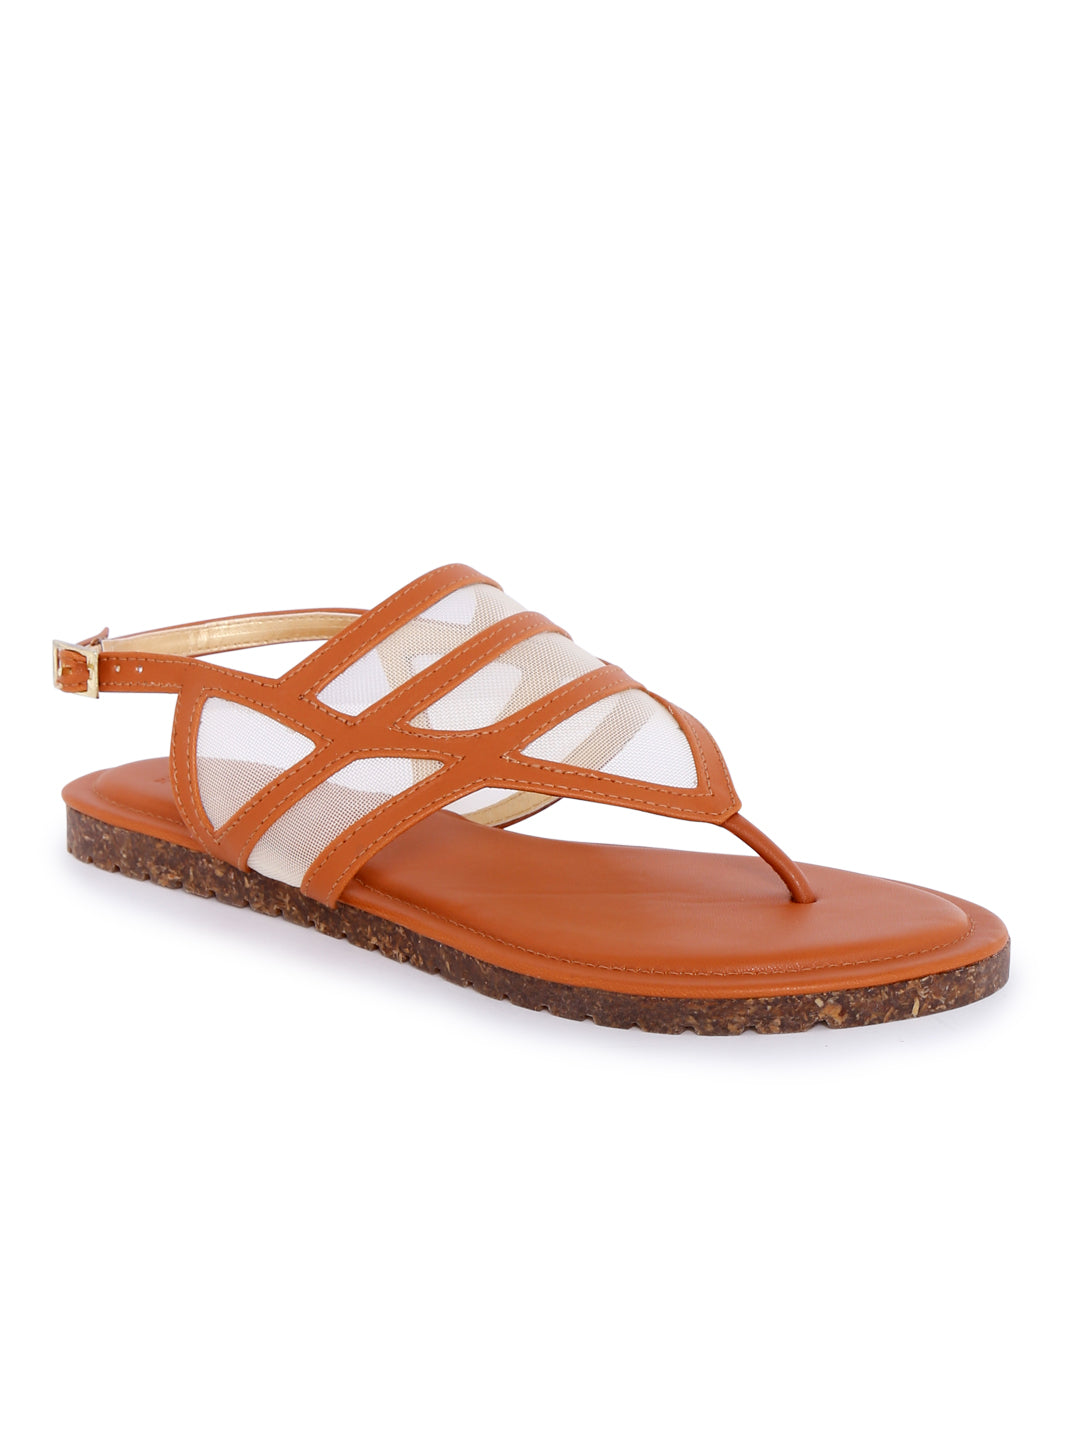 Tan Back Strap Casual Sandals